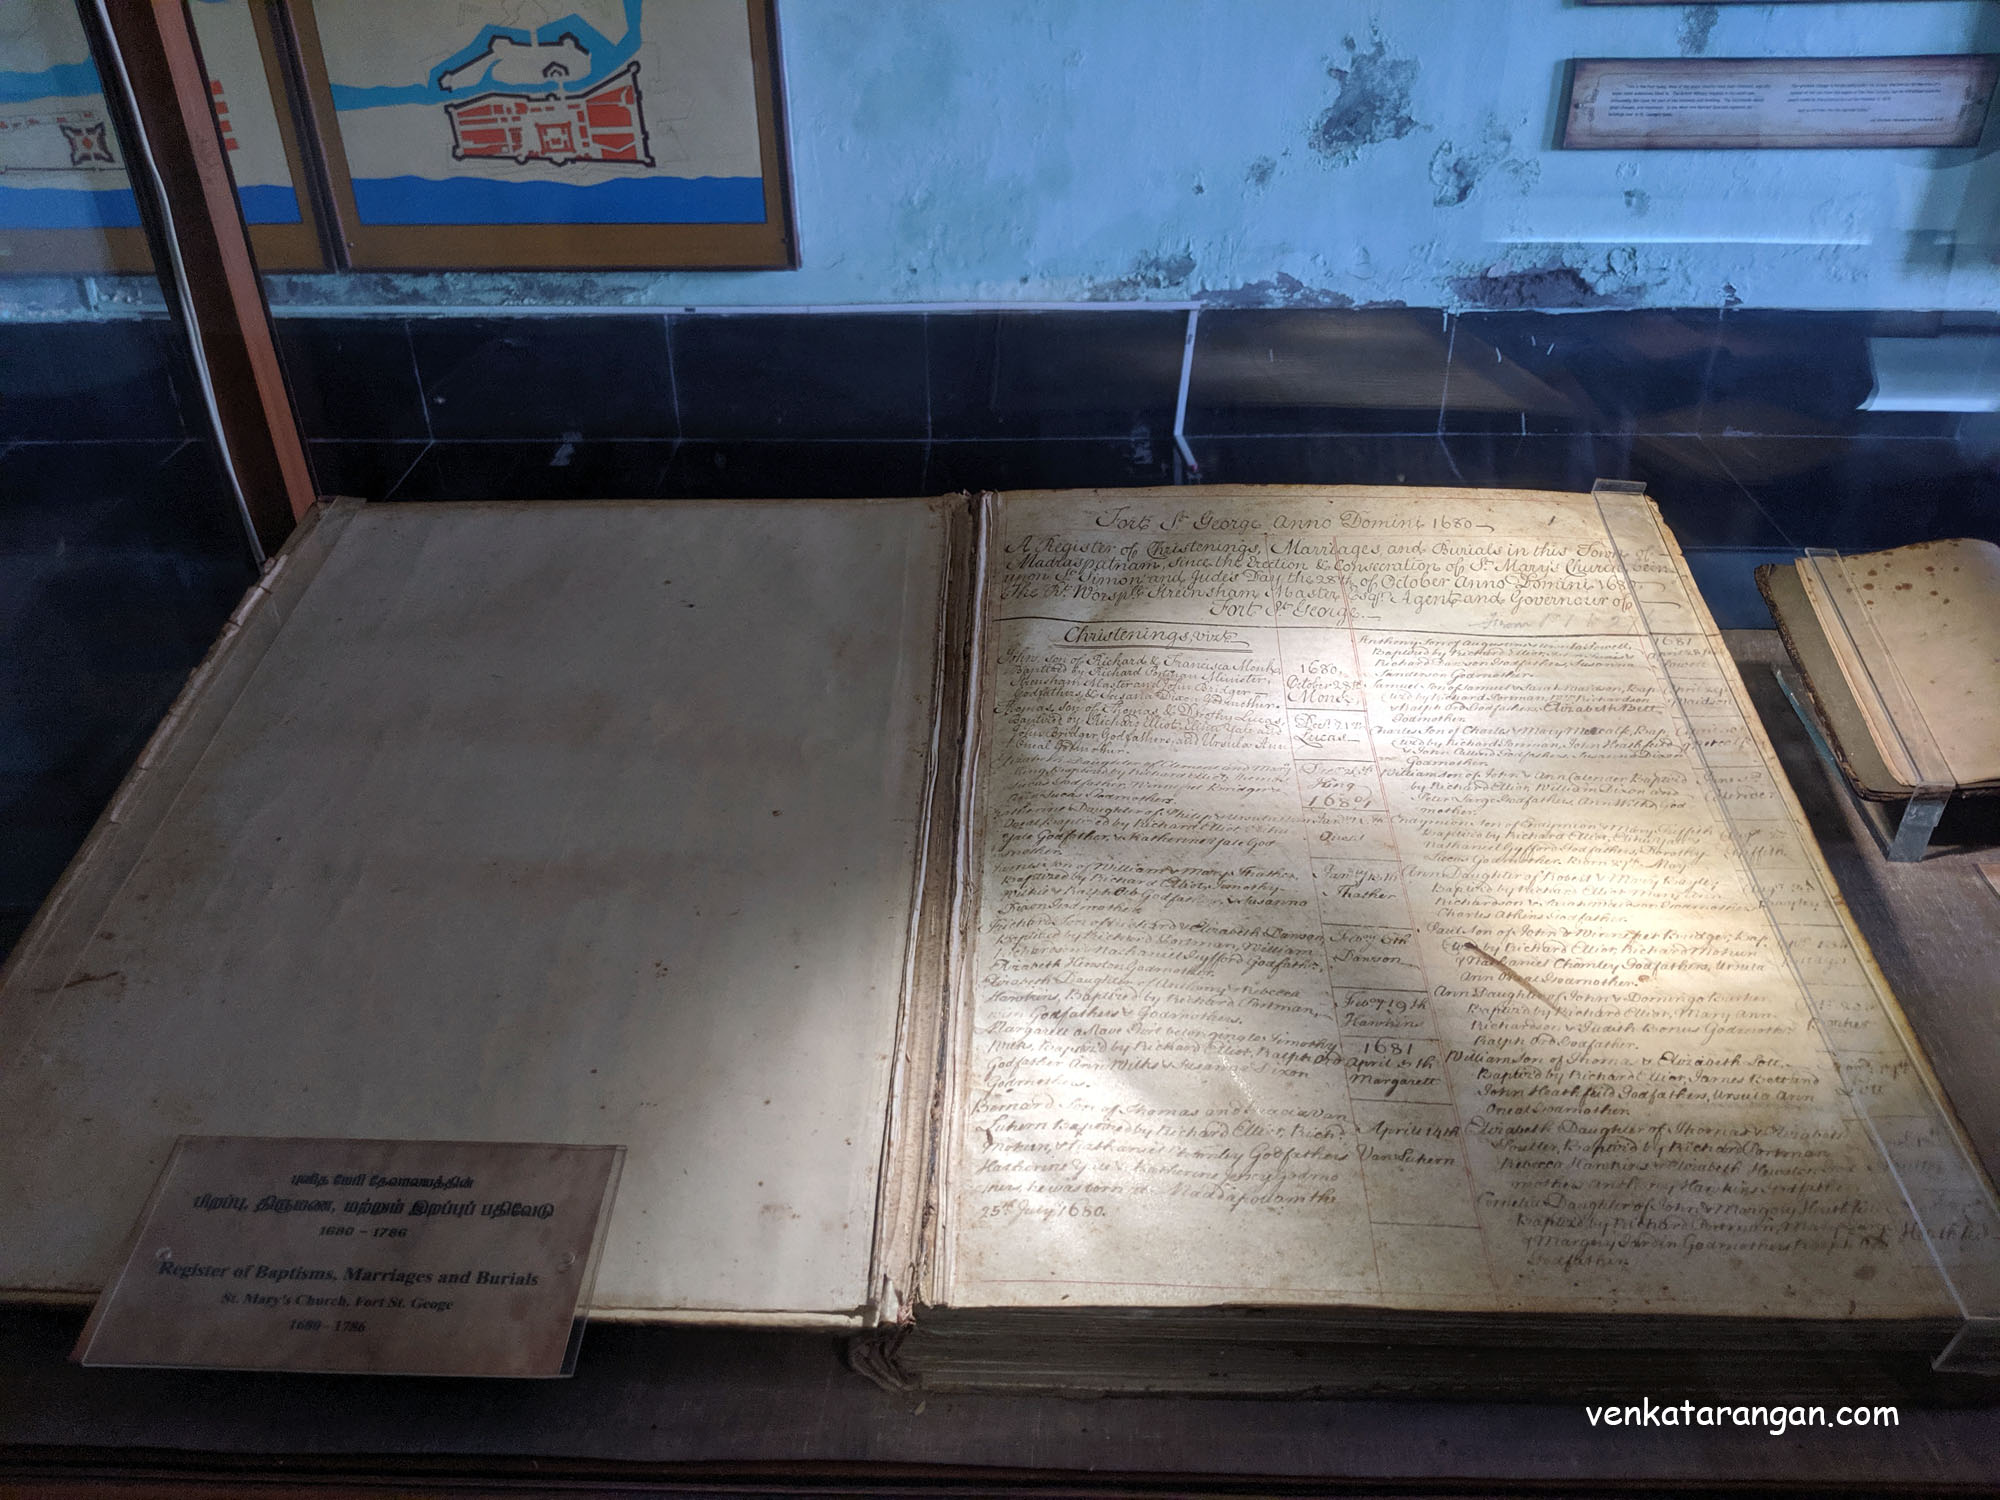 Register of Baptisms, Marriages and Burials - 1689-1786 — at Fort St. George, Madras, India